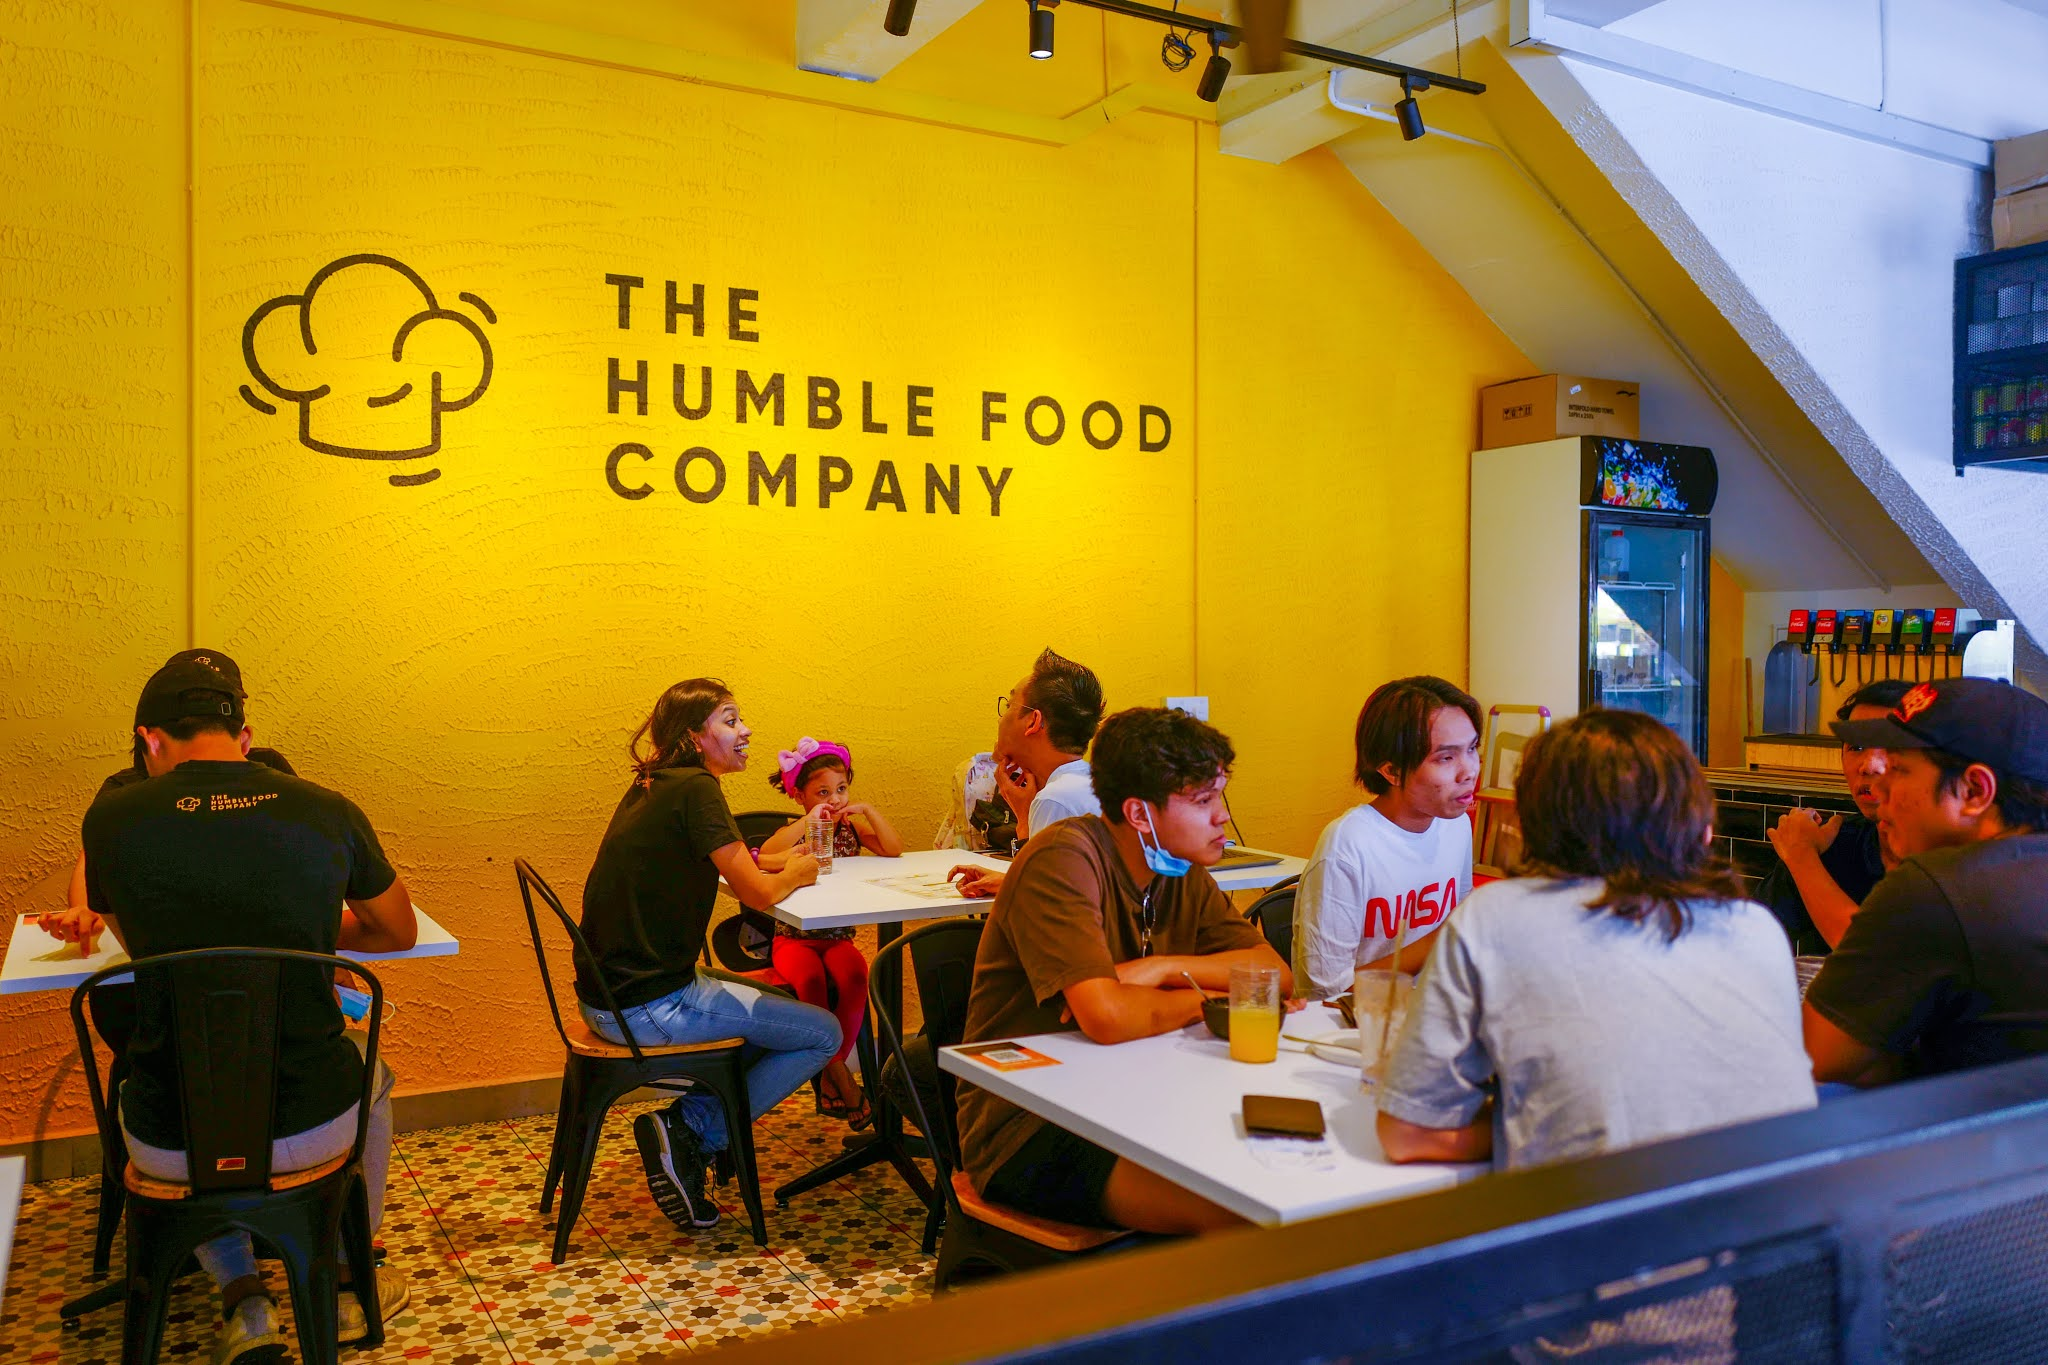 the humble food company, shah alam